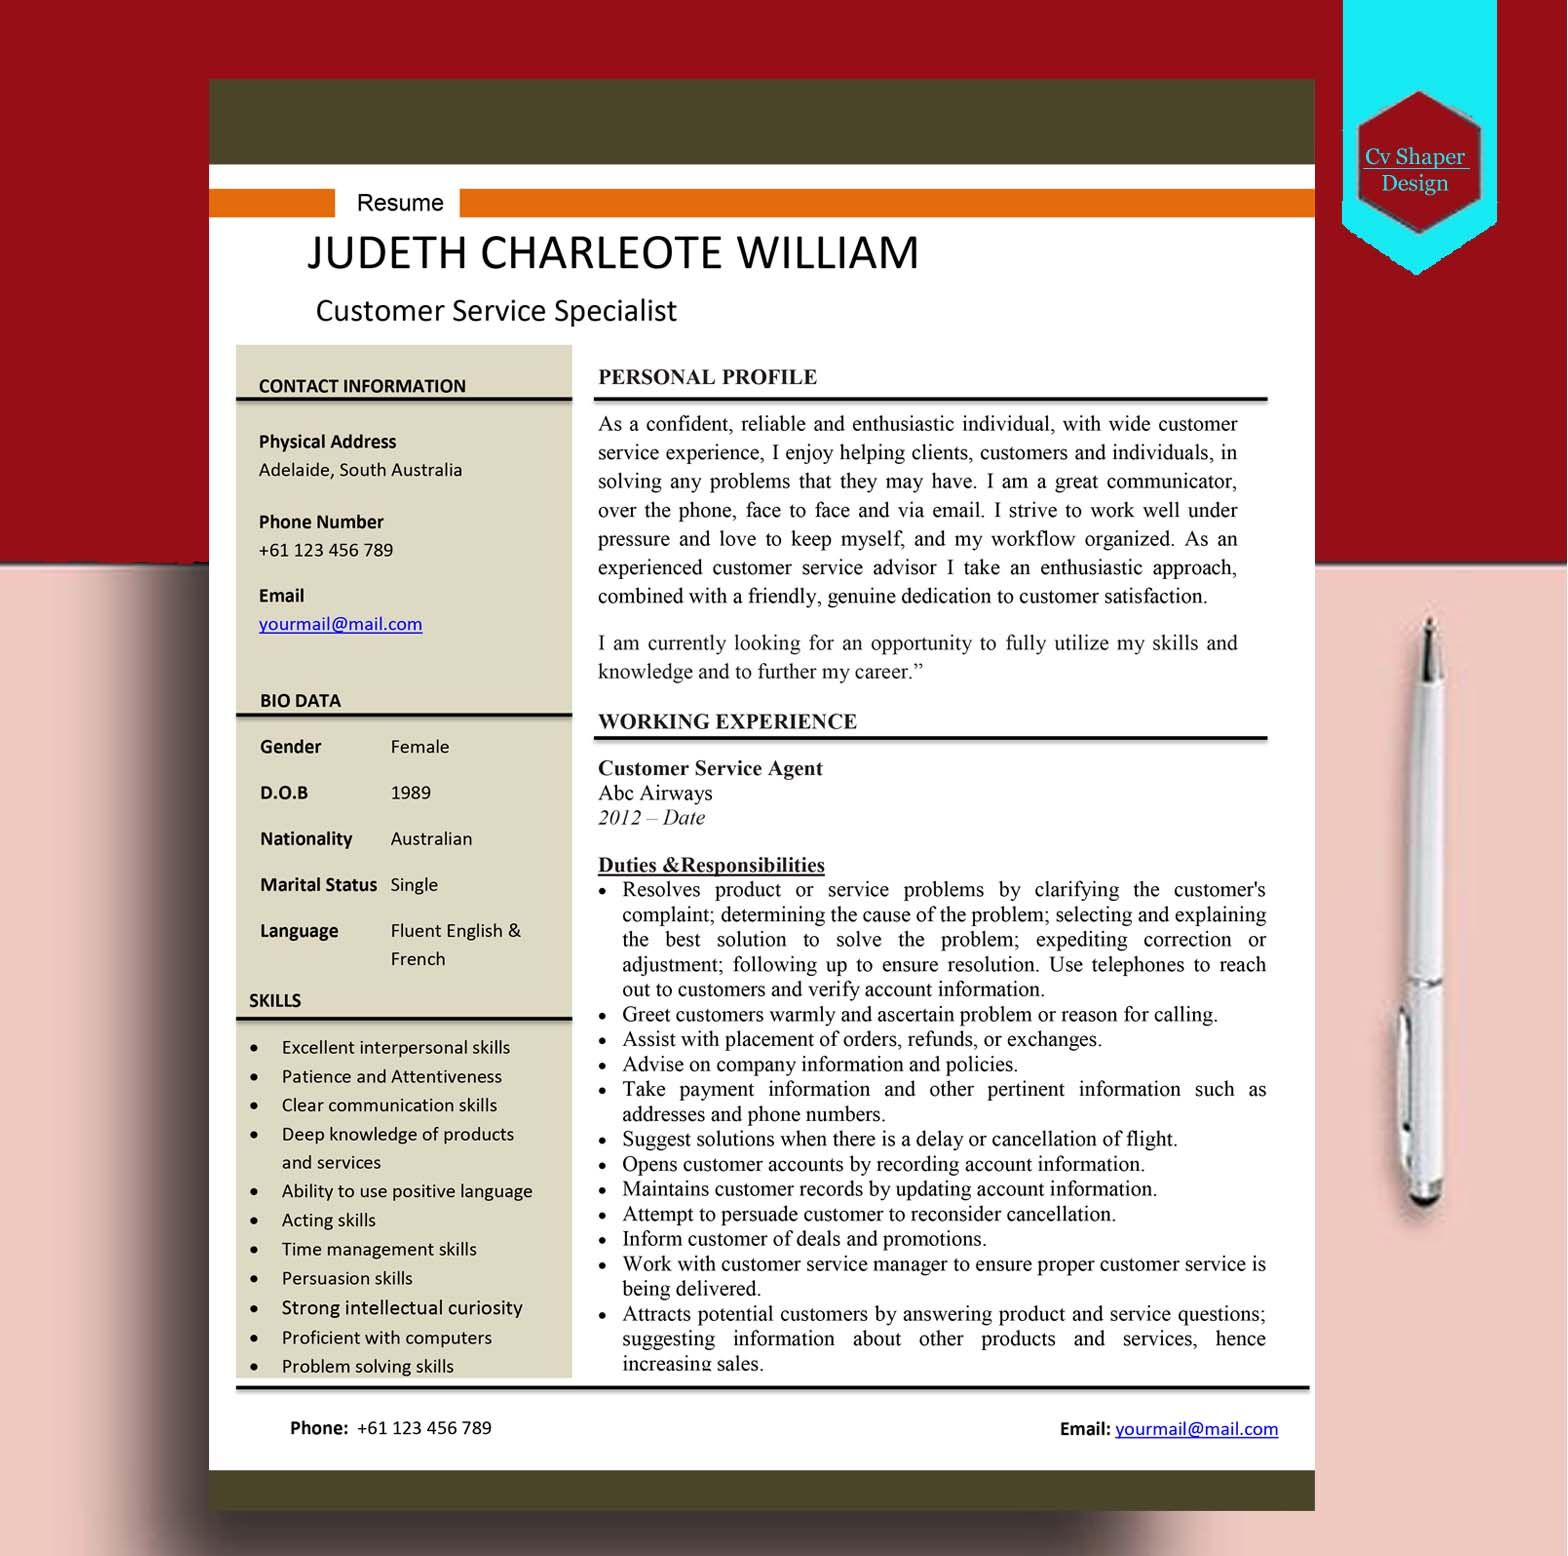 This Customer Care Personnel CV sample can be downloaded